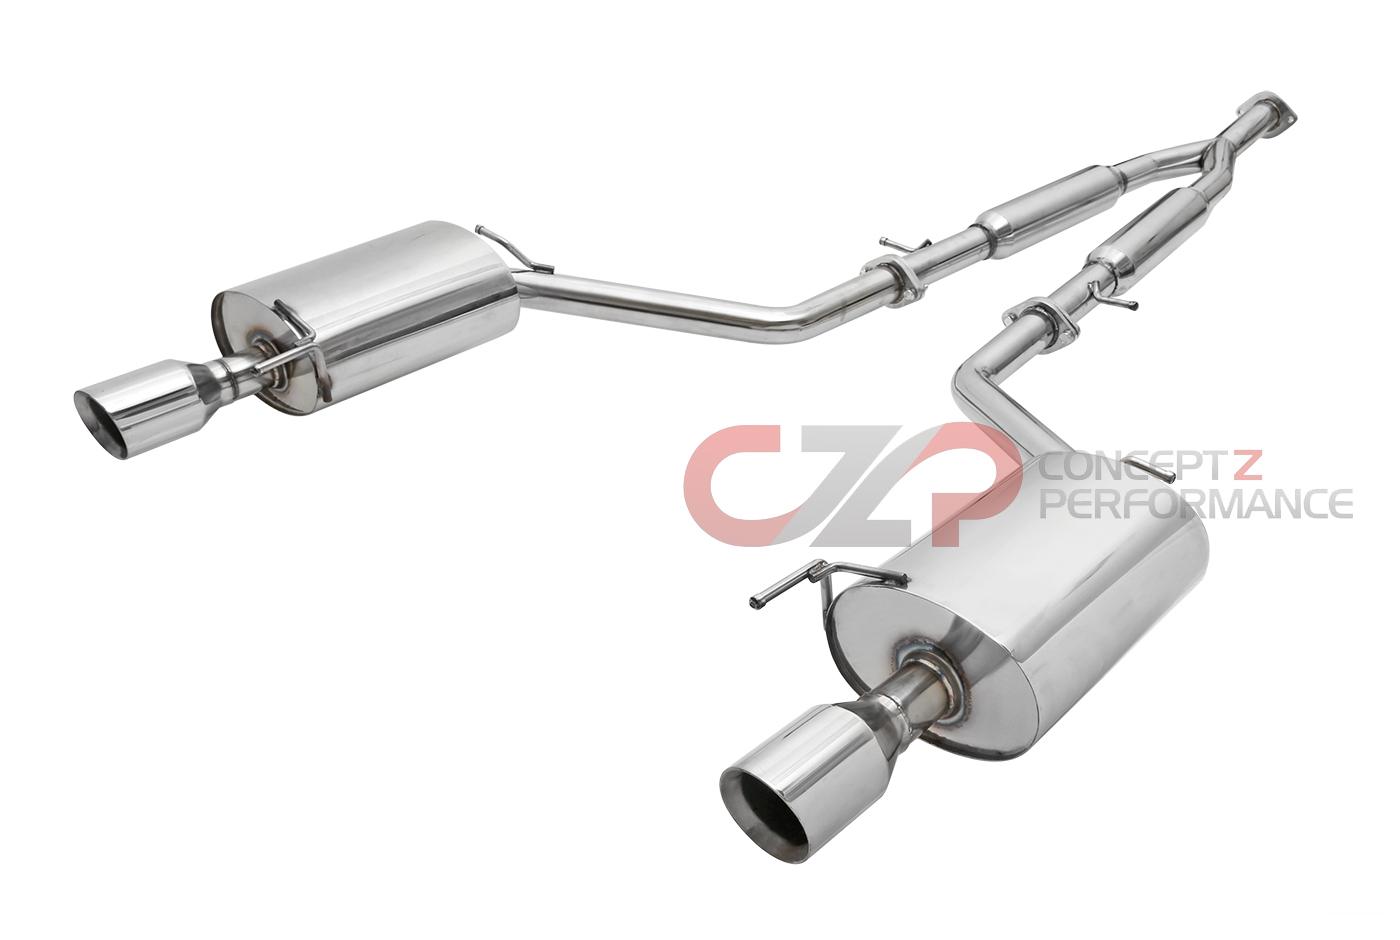 Manzo Y-Pipe Back Exhaust System w/ Dual Wall Beveled Tips - Infiniti G35 (VQ35HR), G37 Q40 RWD & AWD V36 Sedan